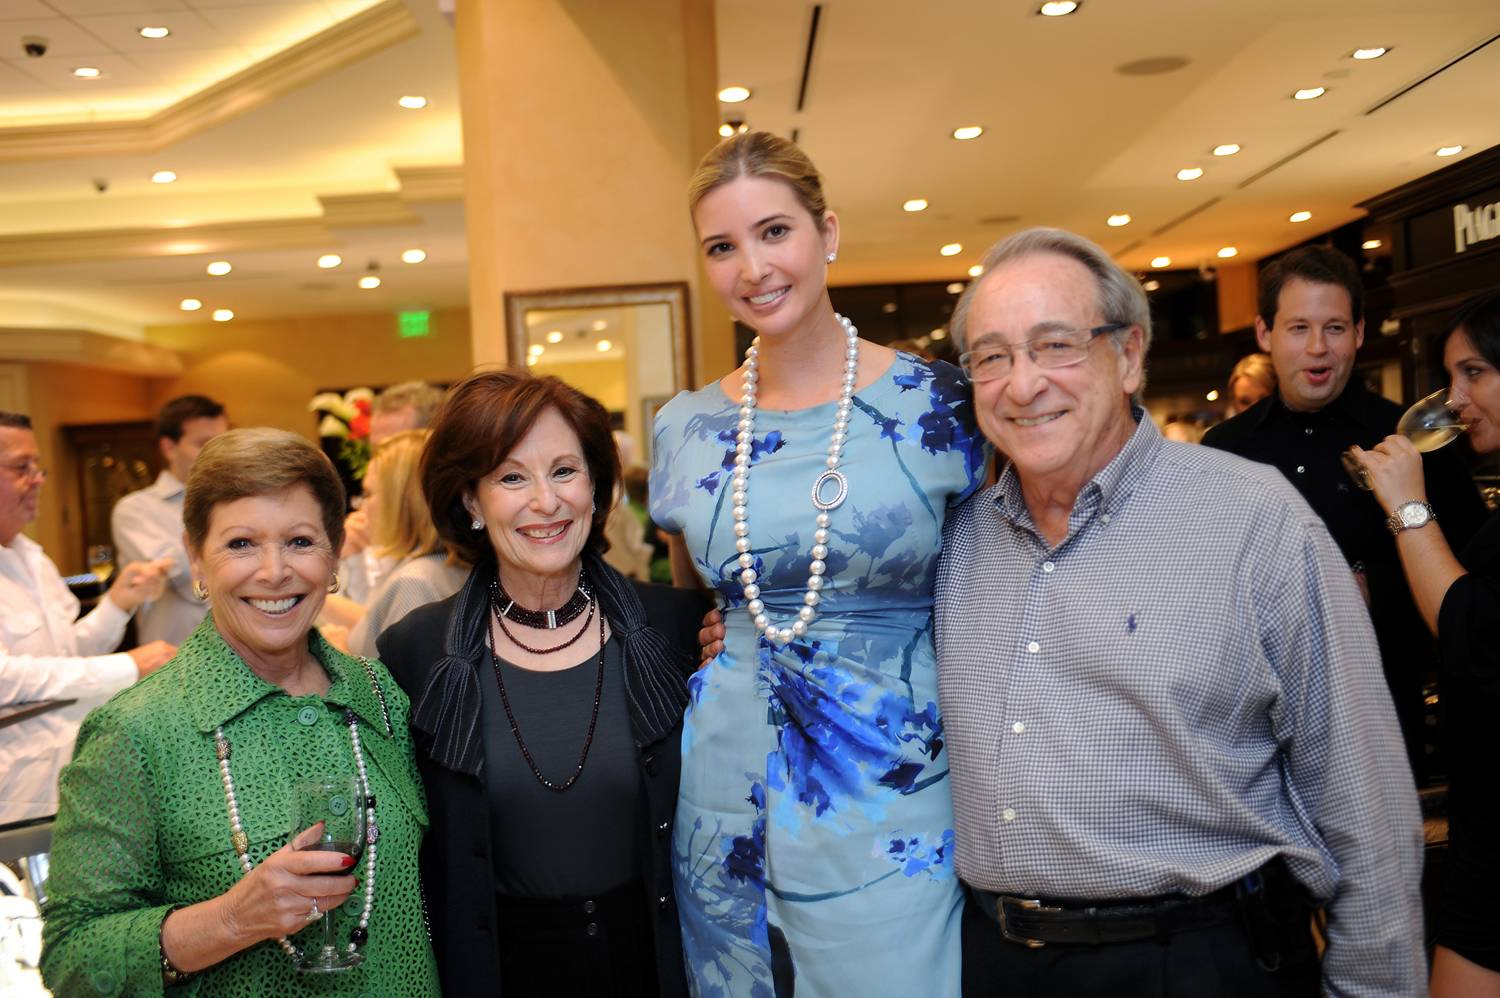 P2 -- Jeannie Bresler, Judy Markey, Ivanka Trump and Benton Markey